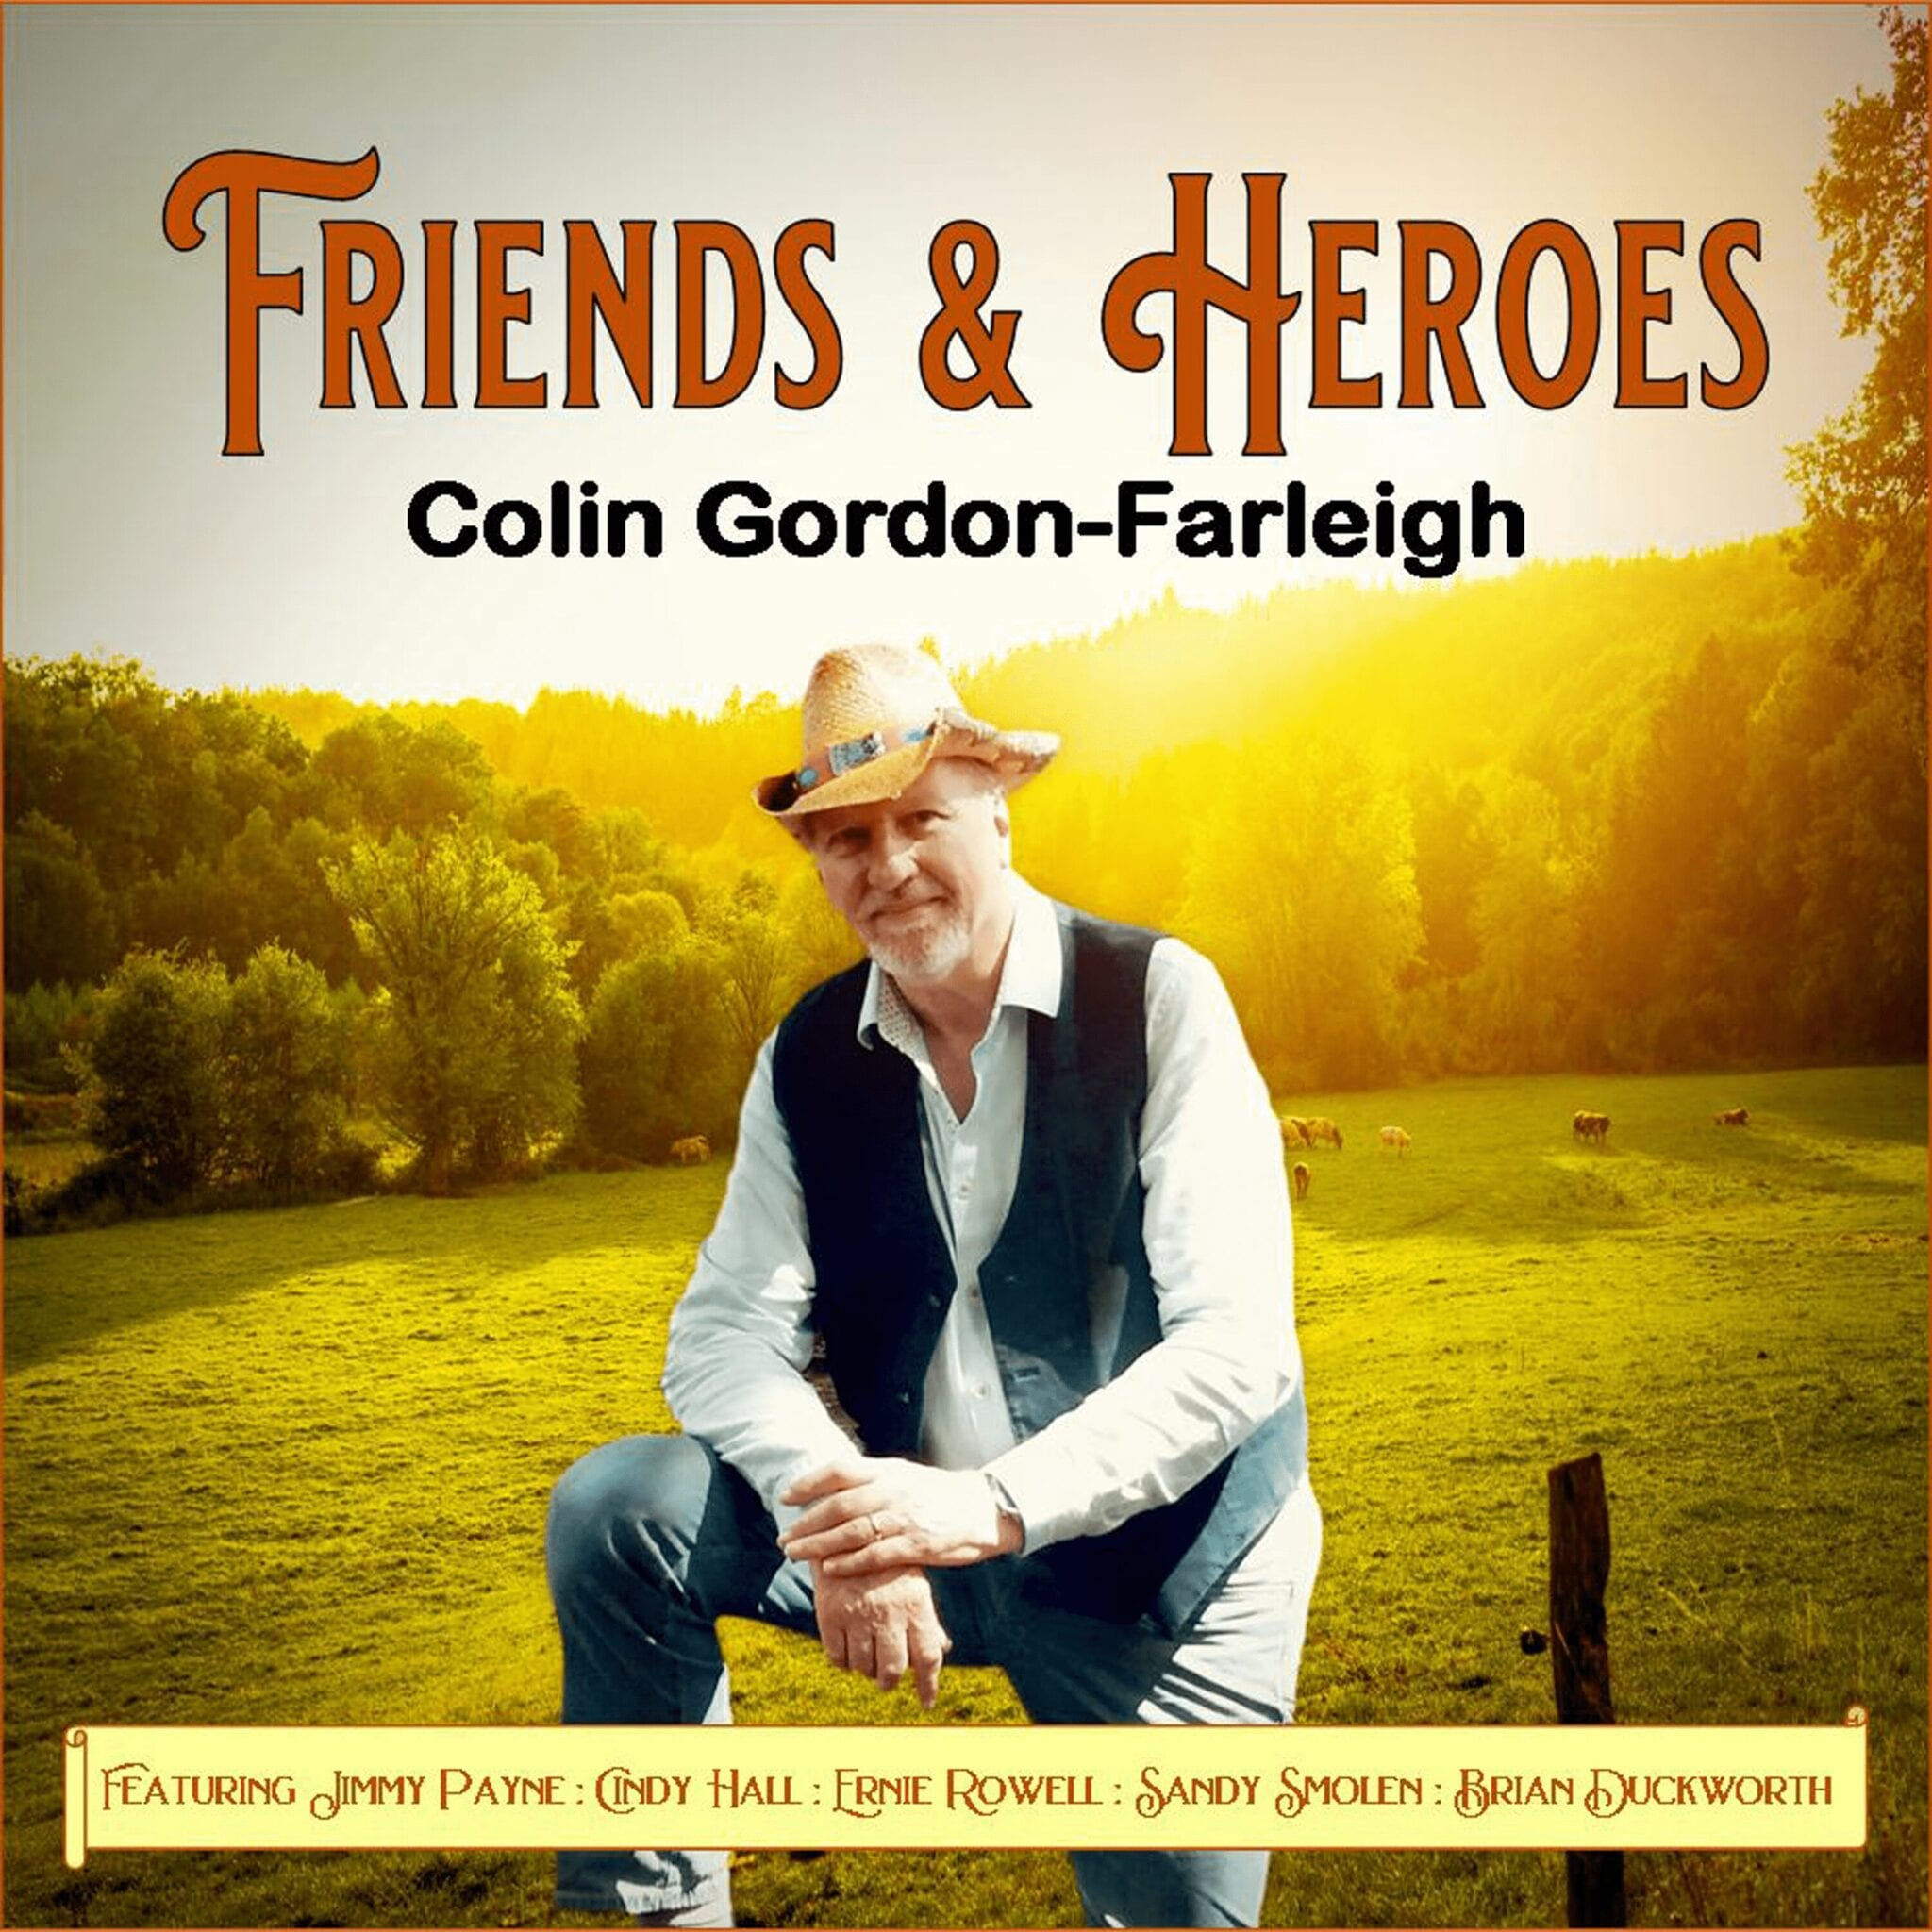 Relax with New Album of Sing-a-long Country Music from Colin Gordon-Farleigh